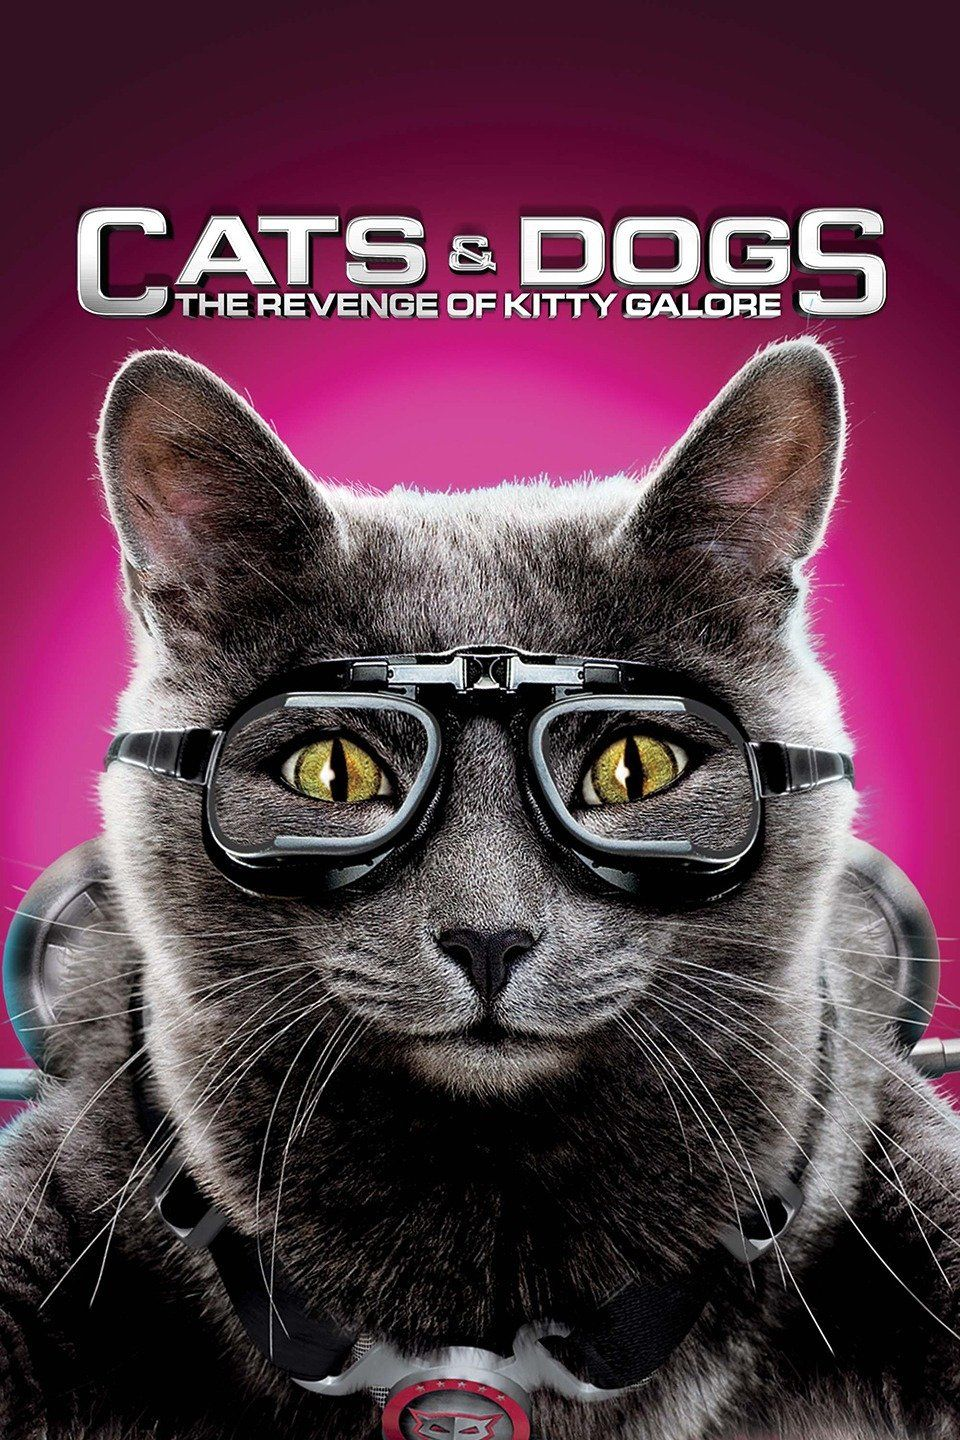 Cats Dogs The Revenge Of Kitty Galore Full Movies Online Free Full Movies Online Cats